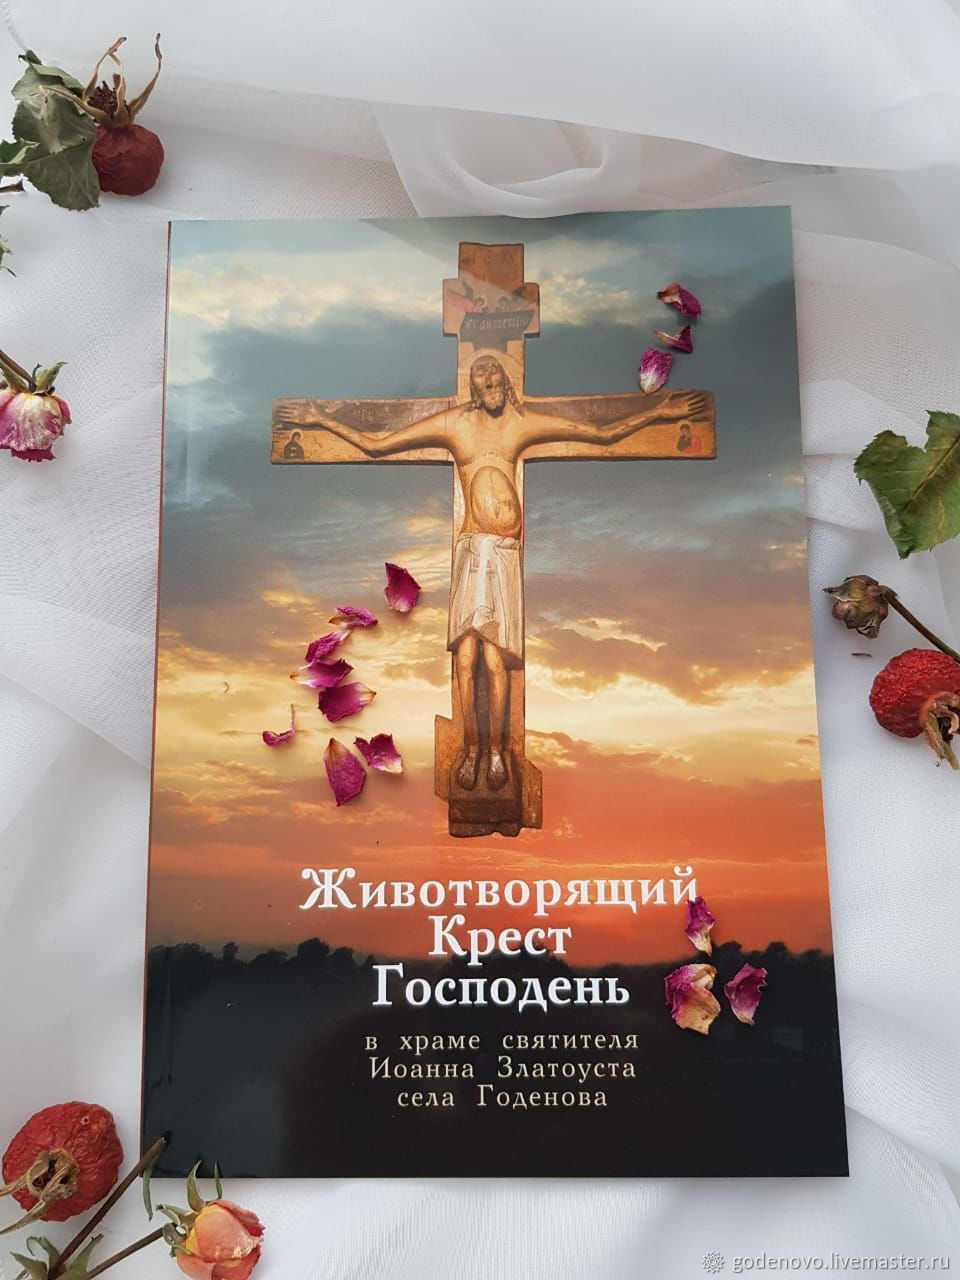 Book about the Miraculous Cross of Godenovo, Altar of Esoteric, Pereslavl-Zalesskij,  Фото №1